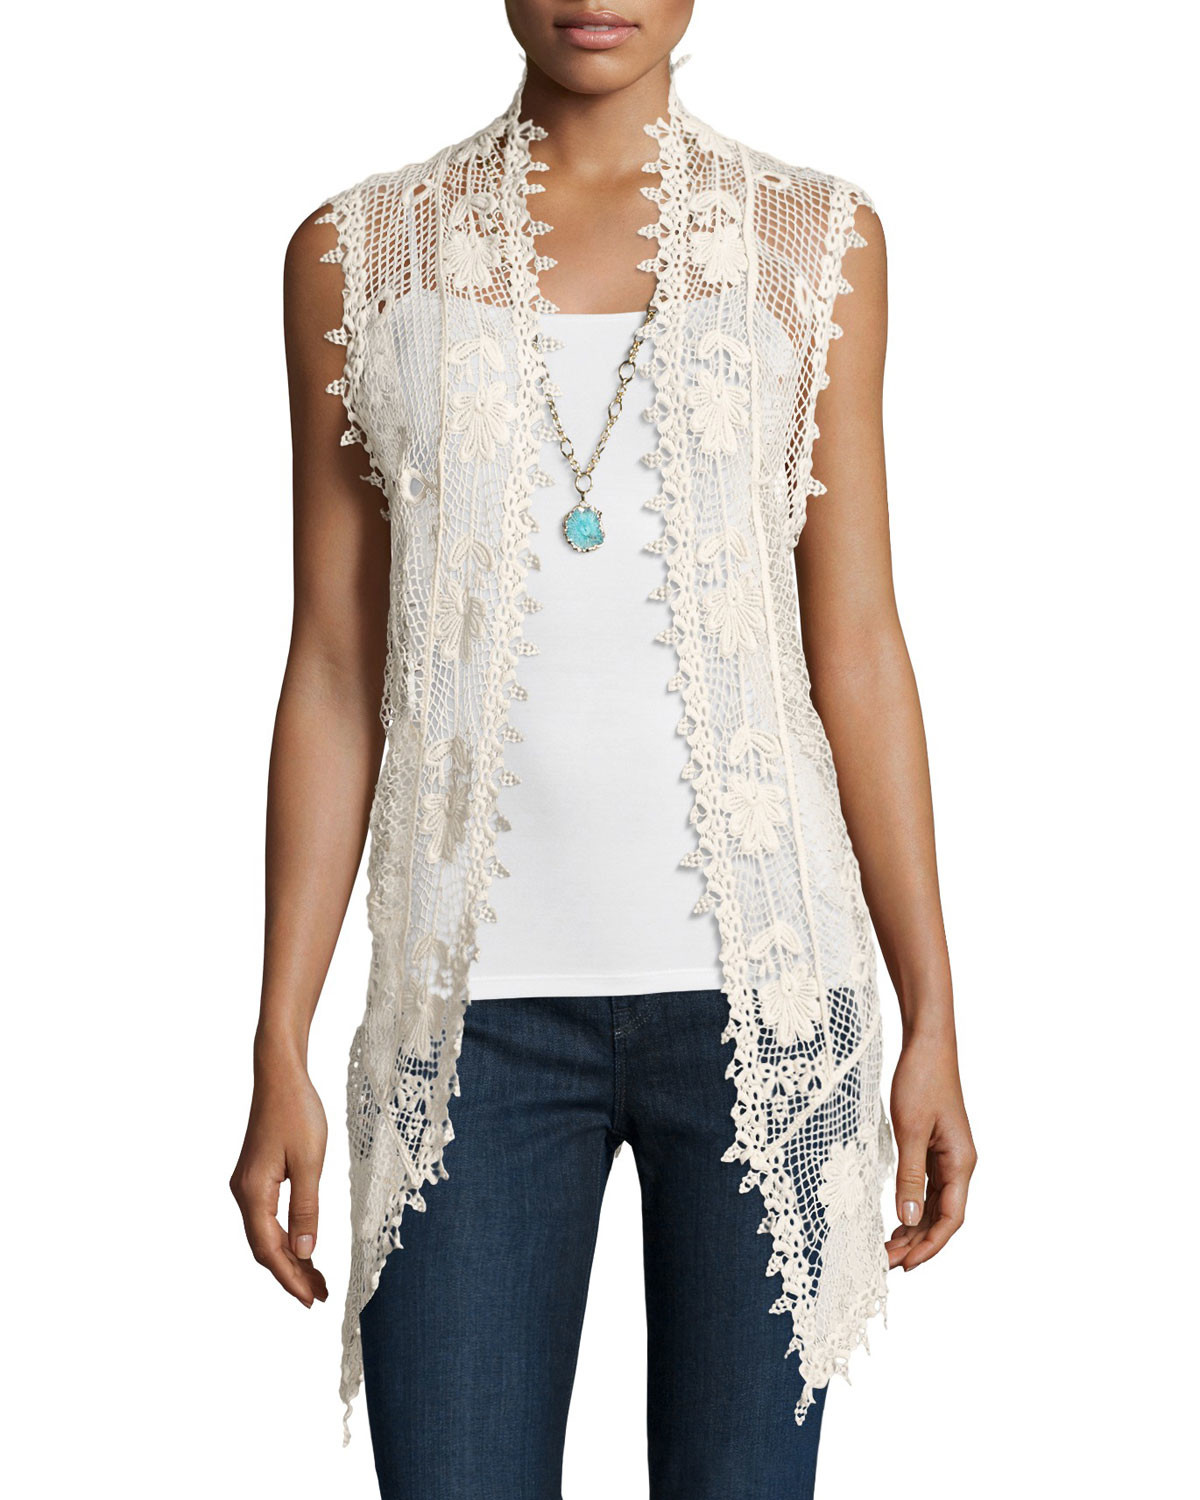 Lyst Liquid By Sioni Long Sleeveless Crochet Vest in Natural